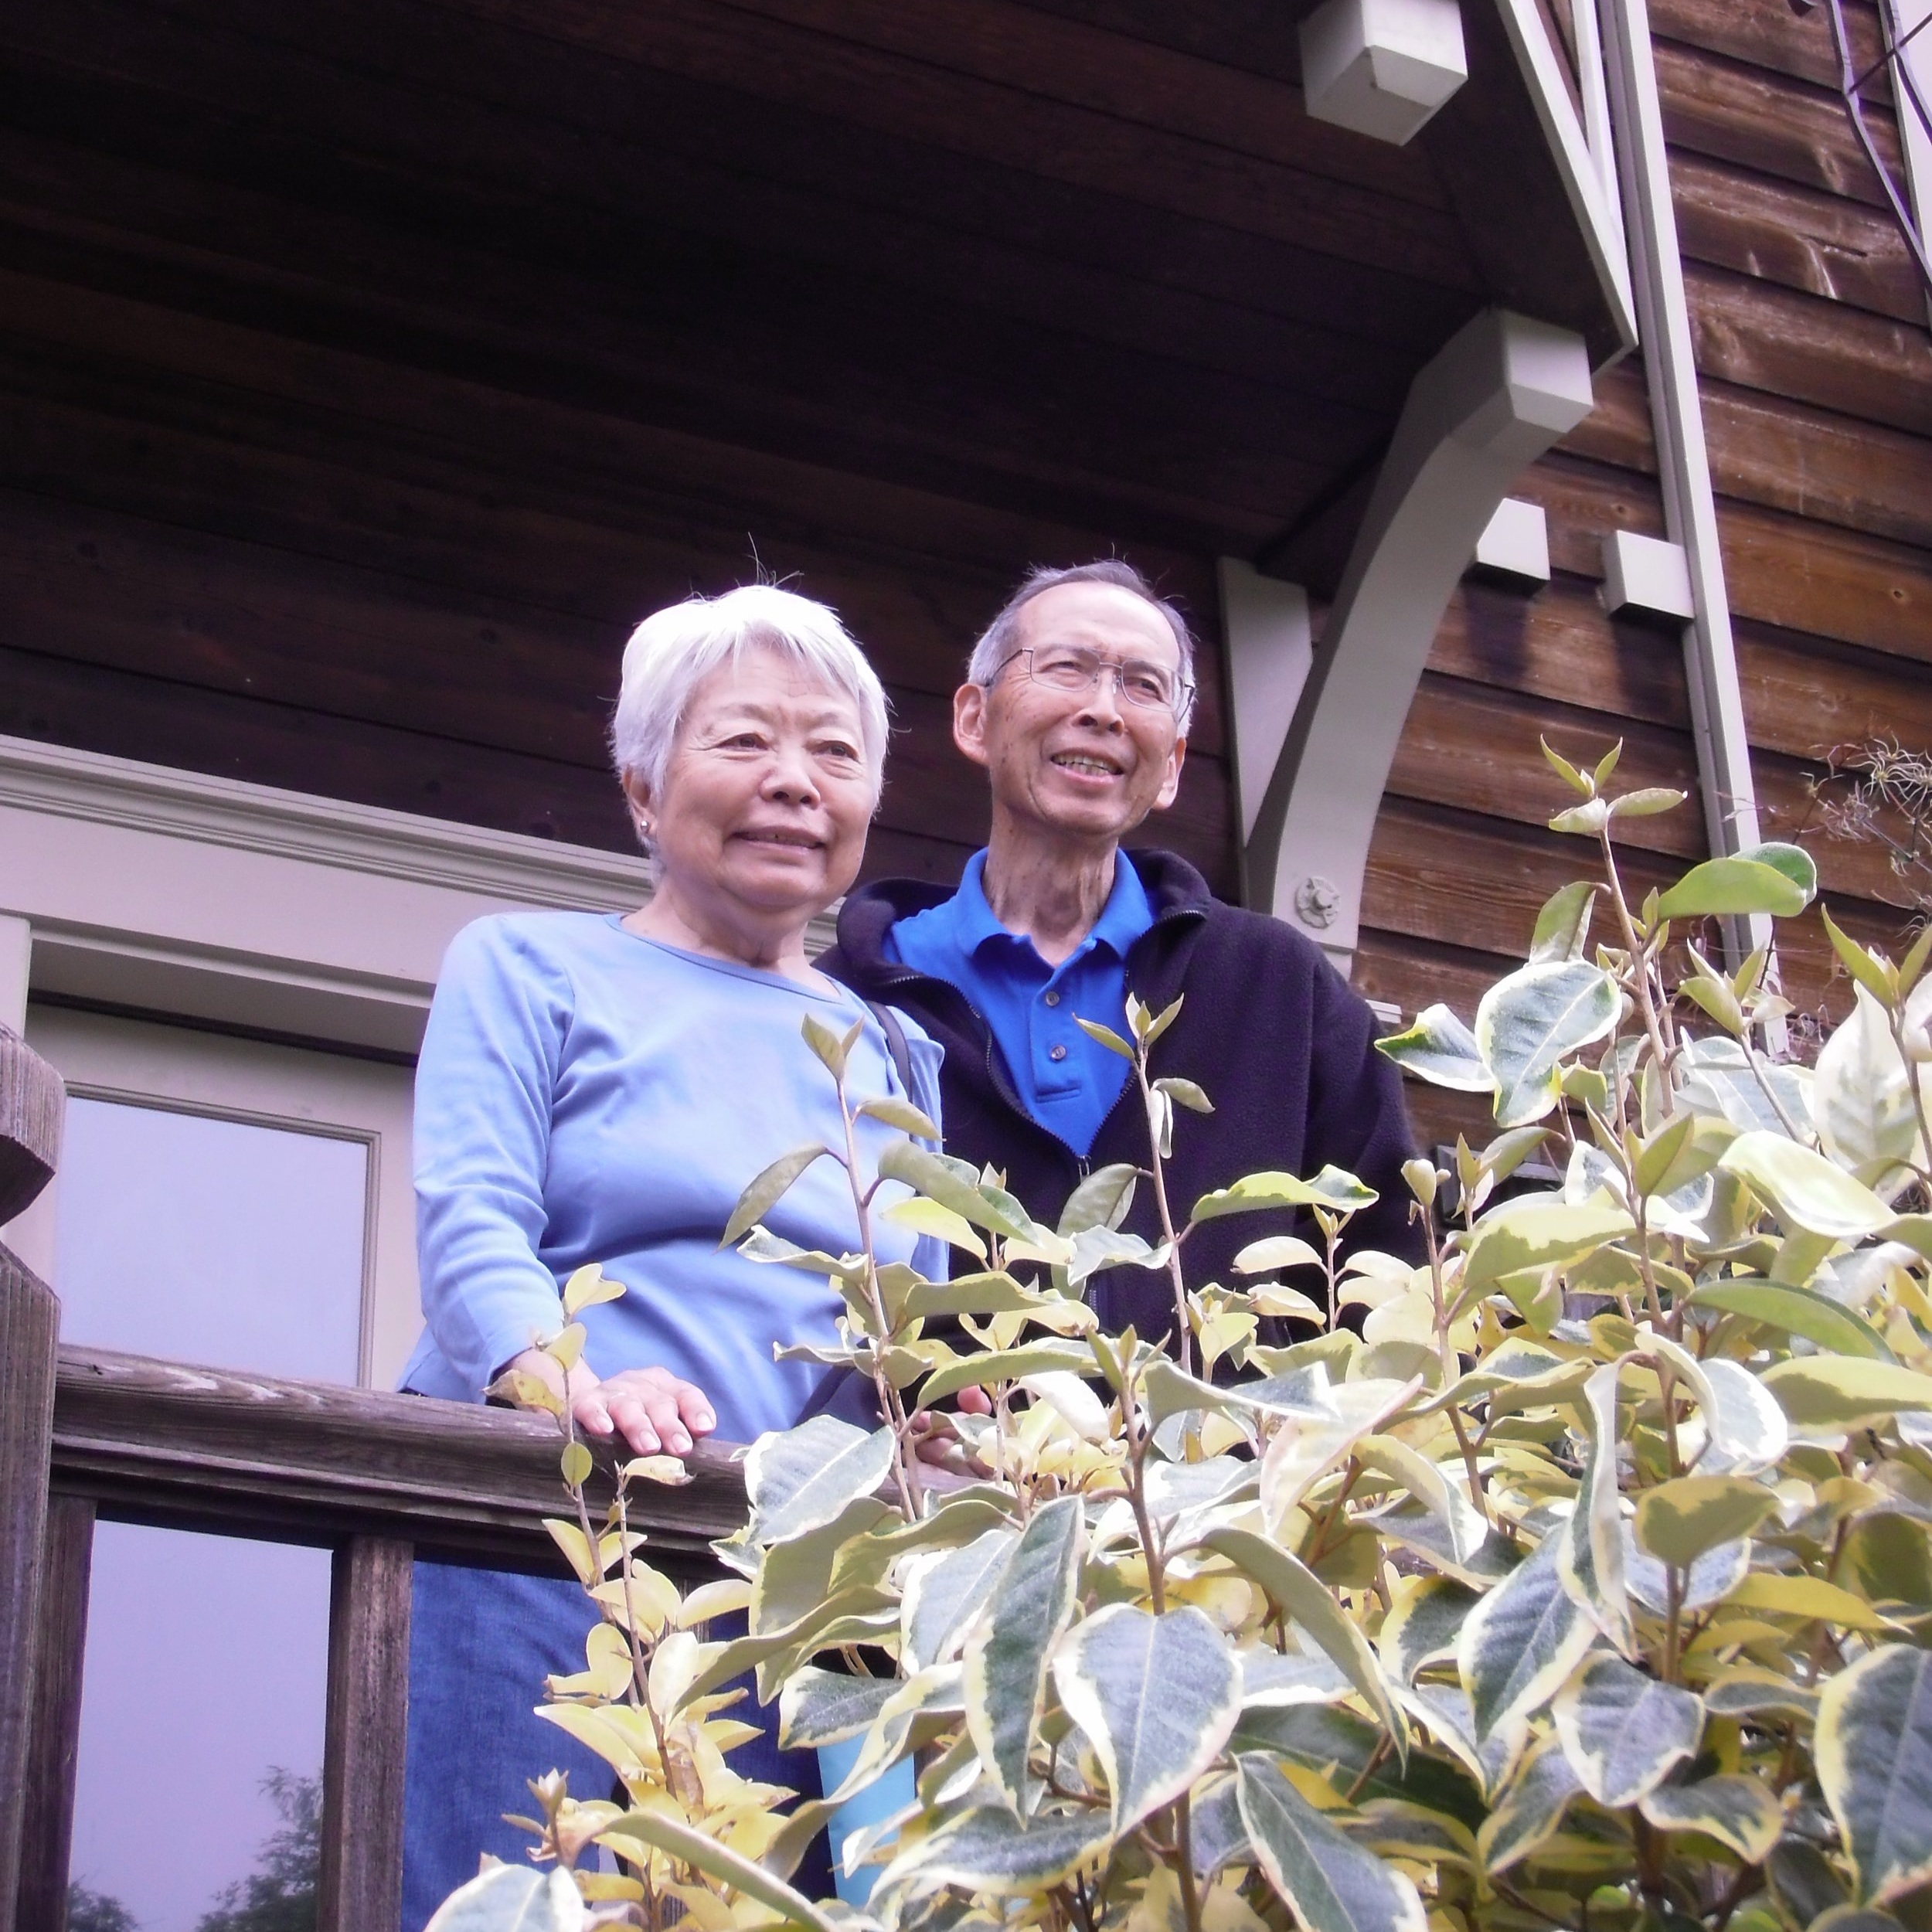 Ann Sato and her husband, Konito